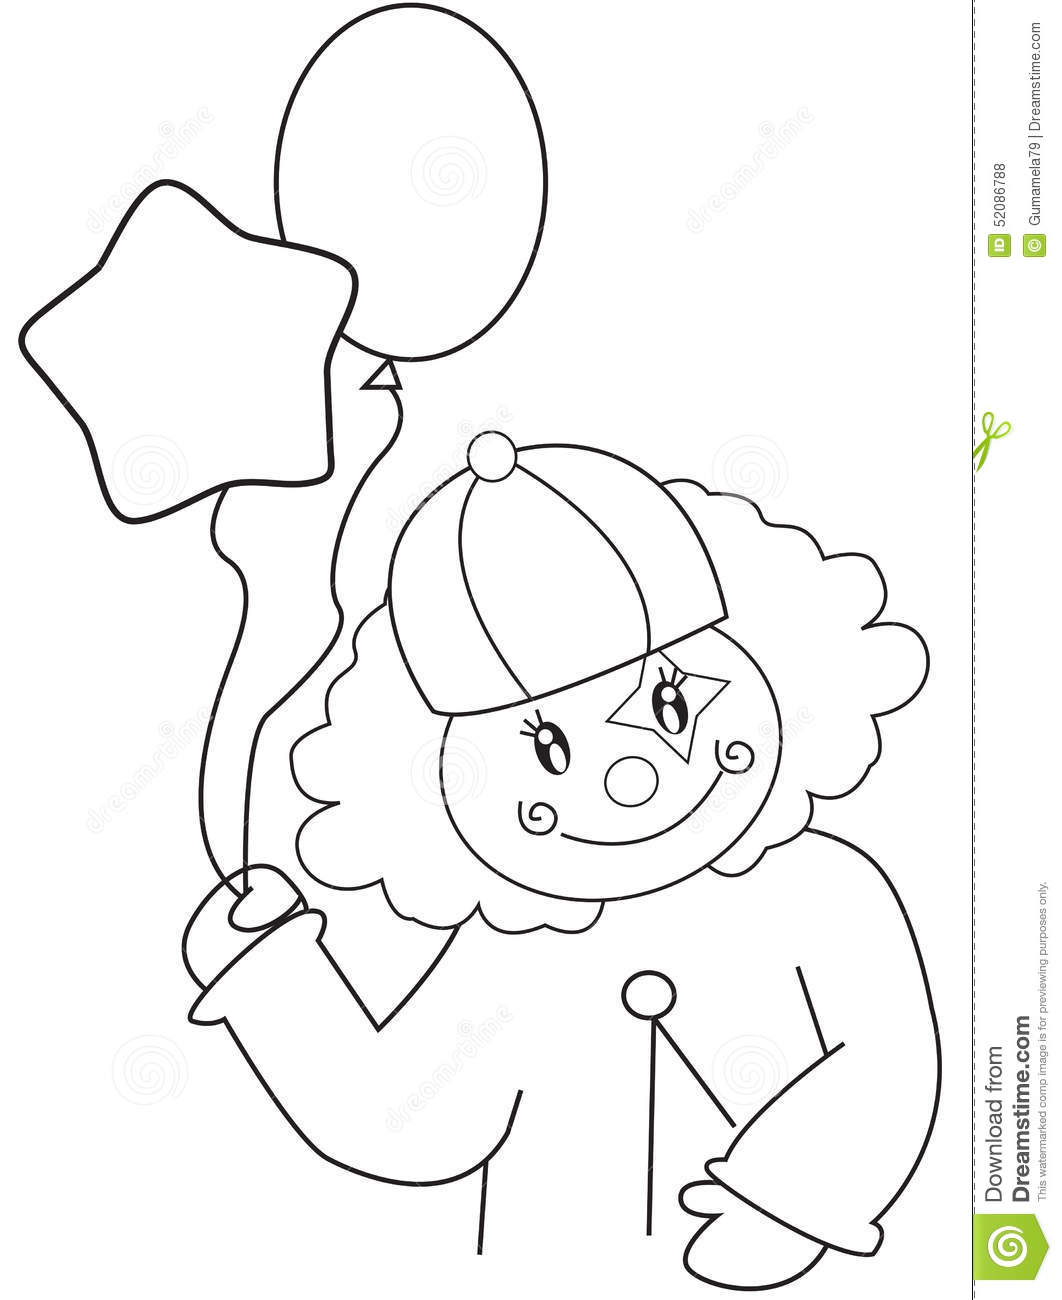 Clown Avec Des Ballons Colorant La Page Illustration Stock